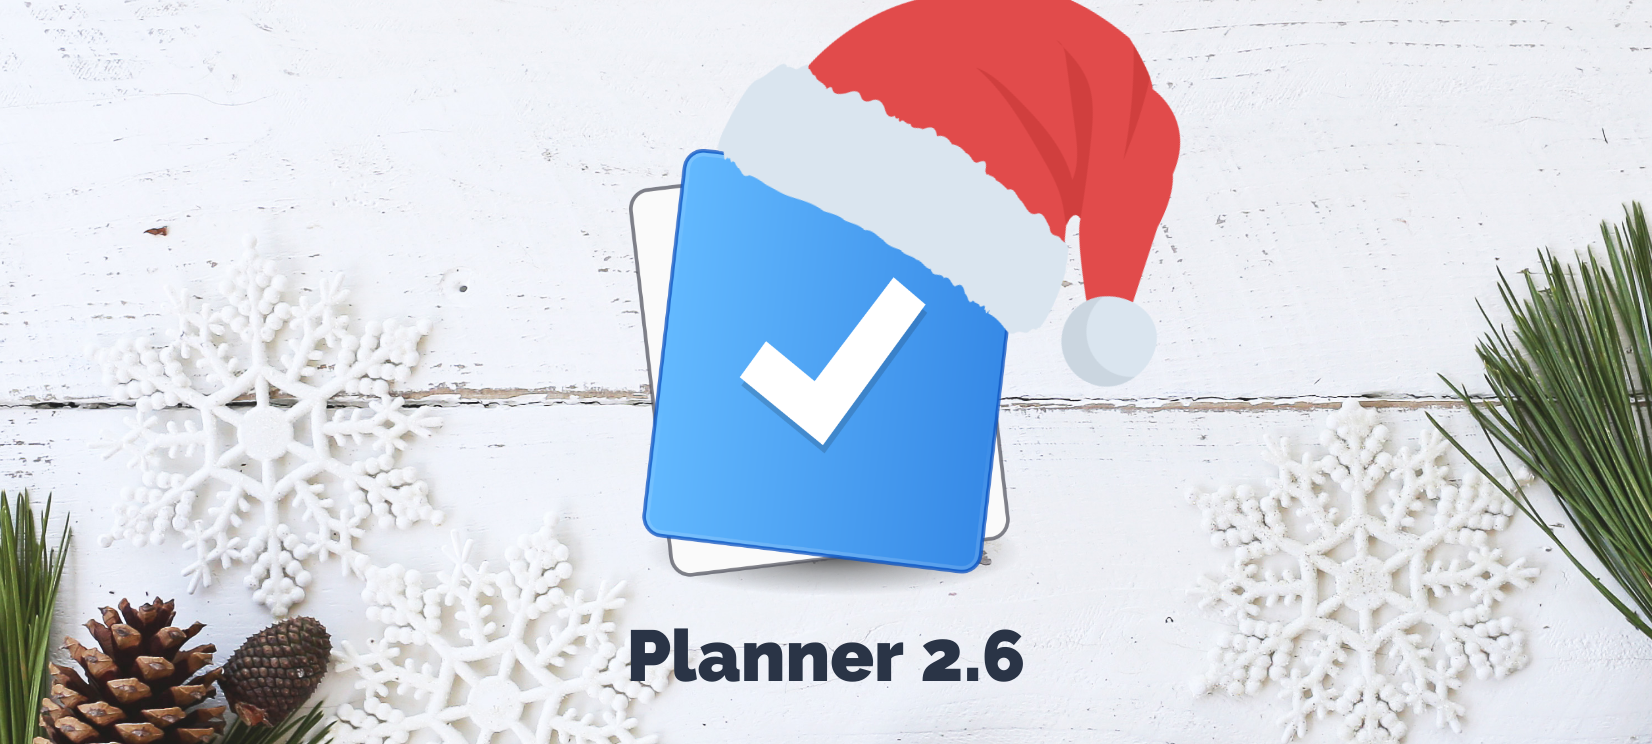 Merry Christmas everyone, Planner 2.6 is here.